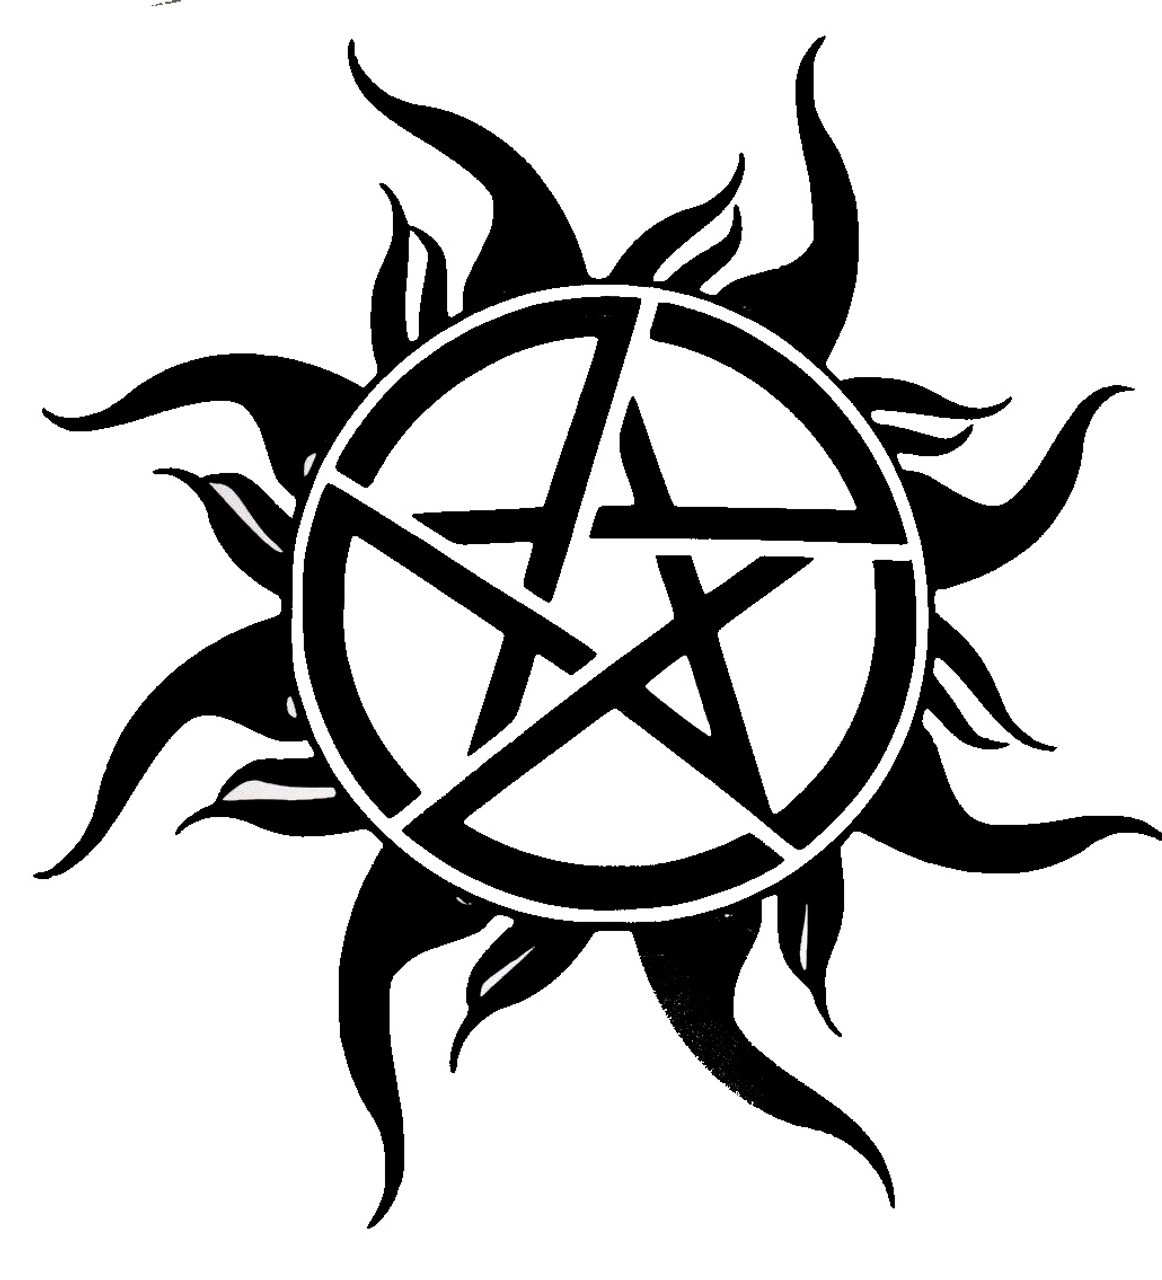 Supernatural Anti Possession Symbol Pentagram